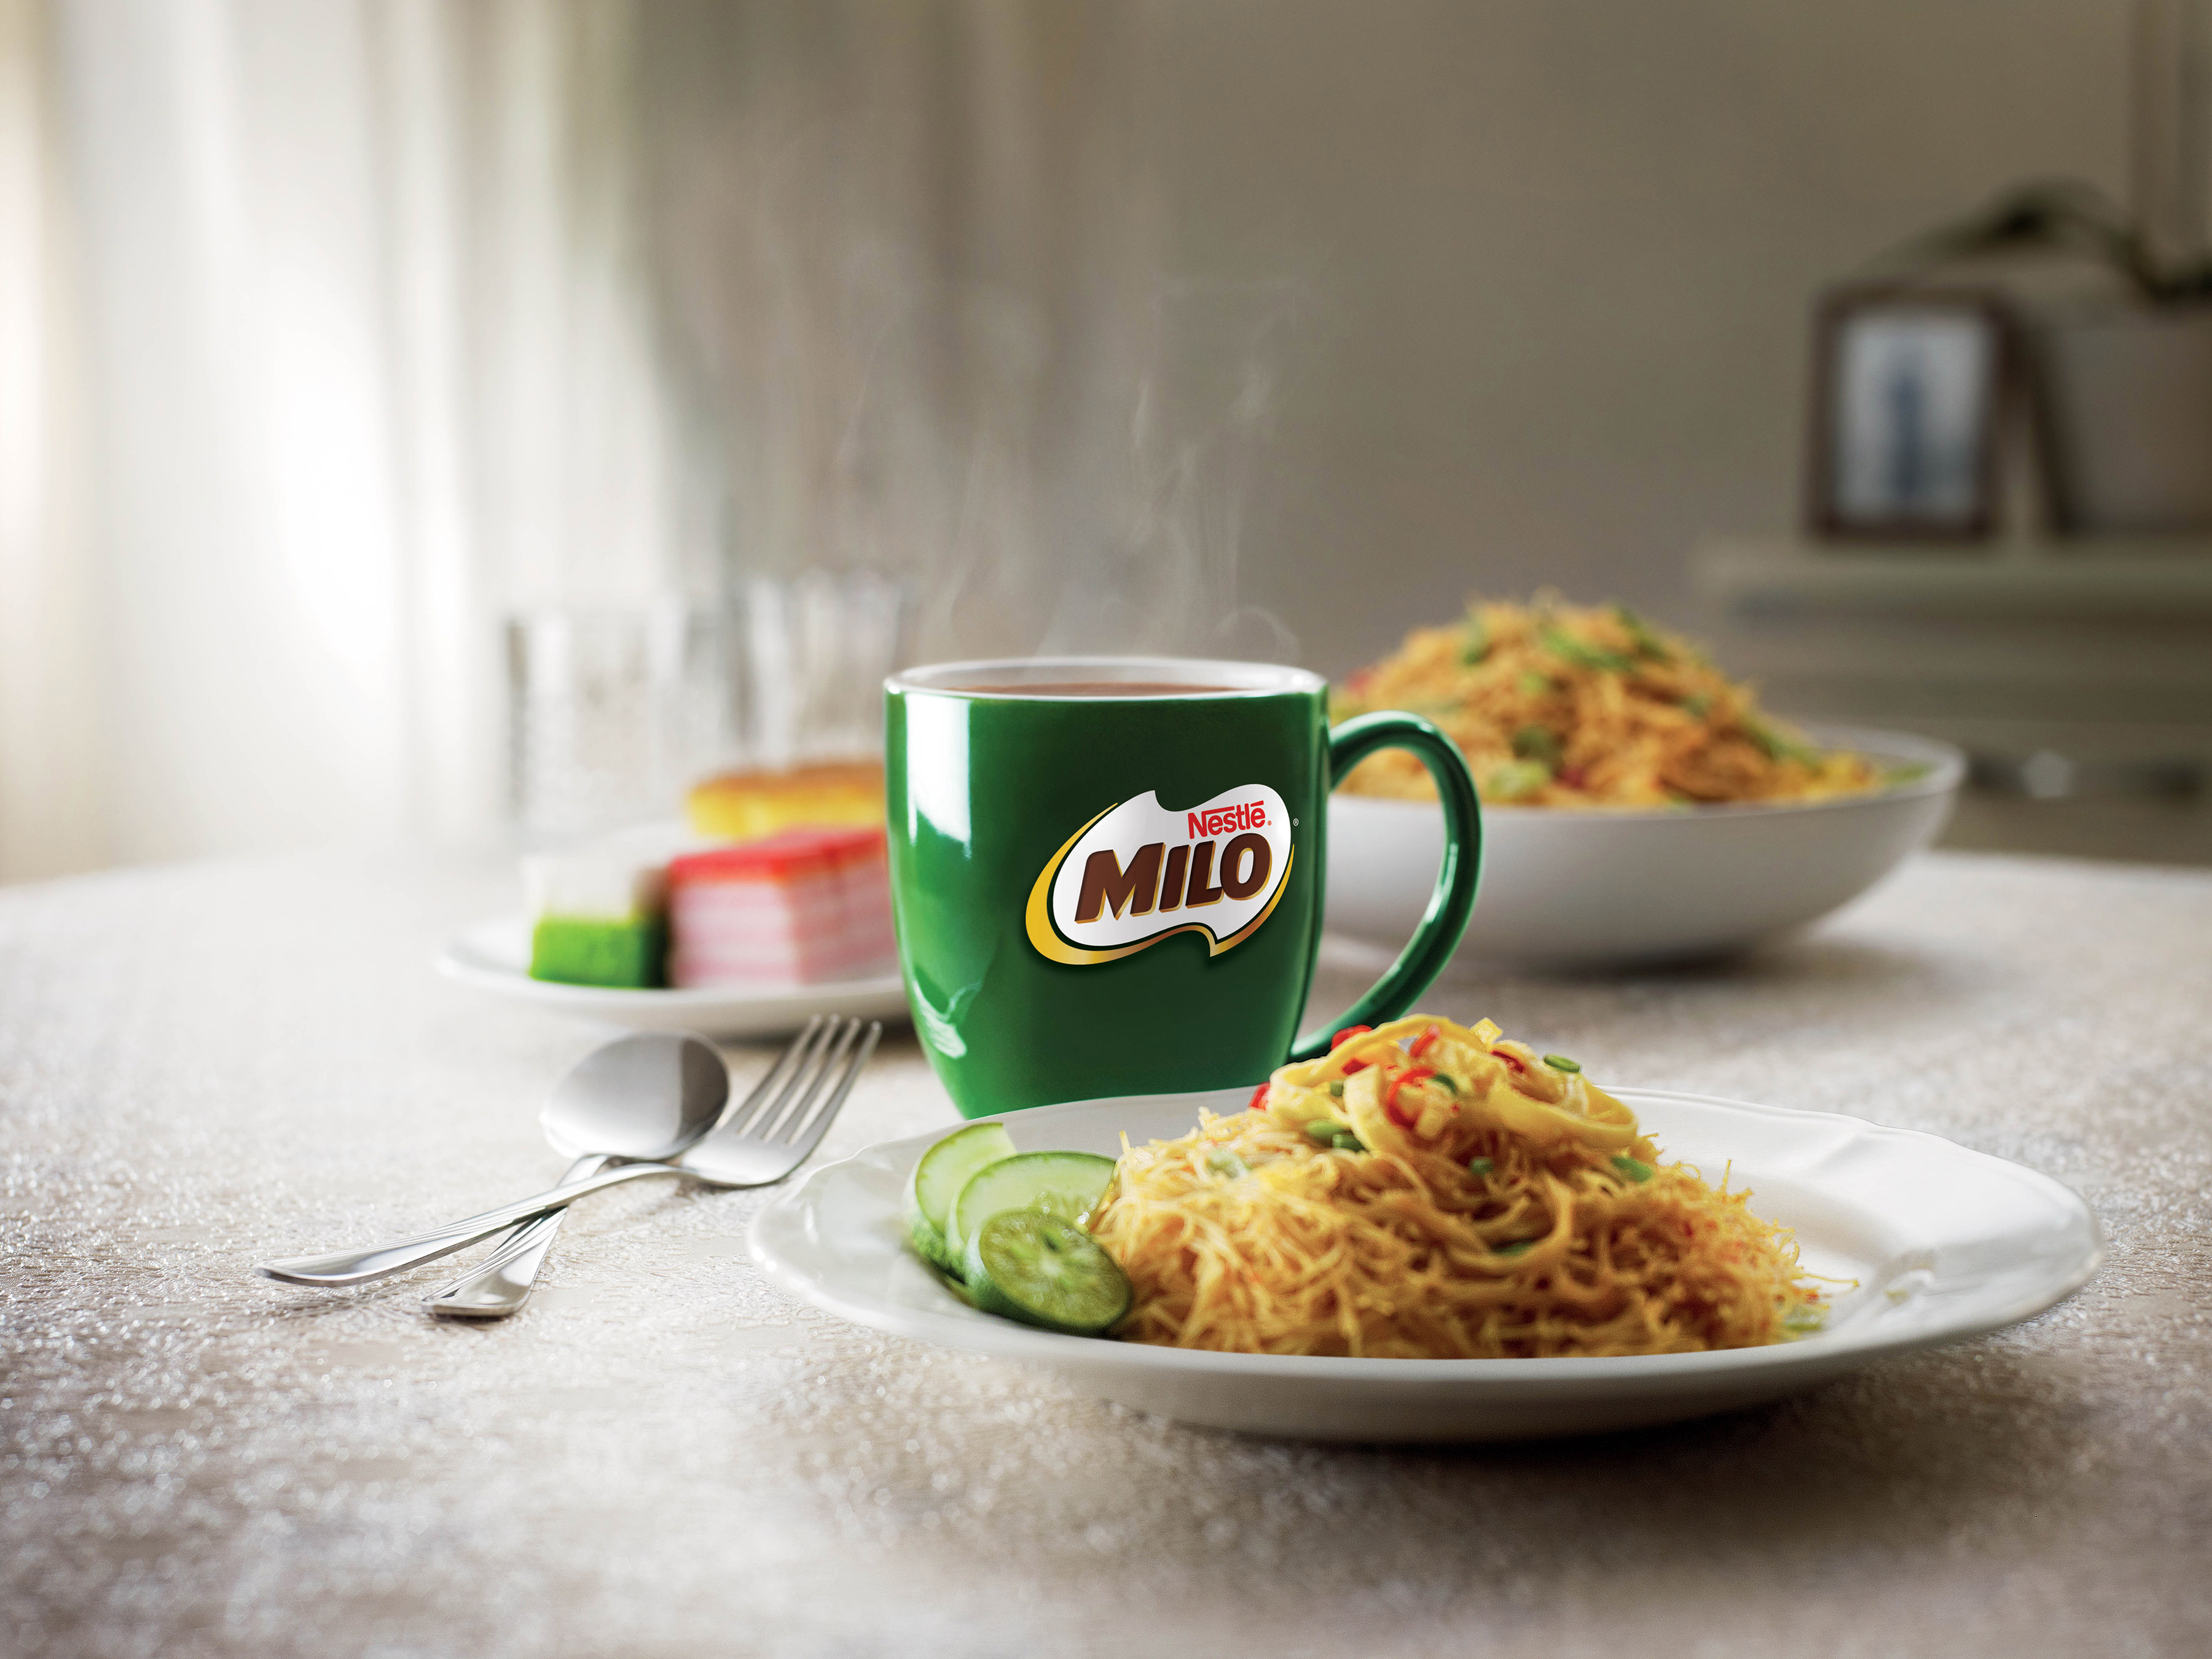 Image from MILO Malaysia